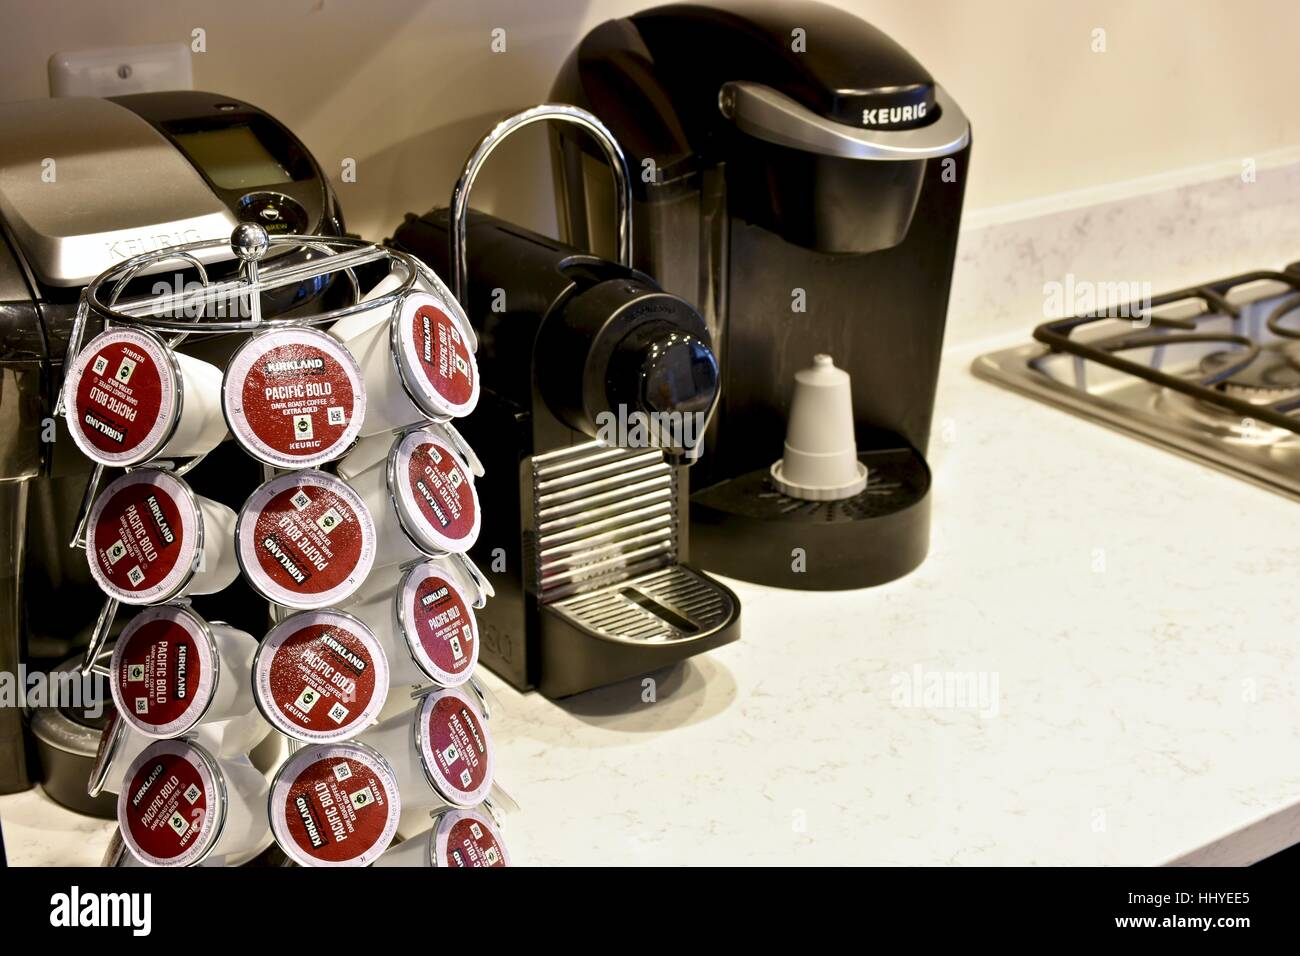 keurig coffee machine and coffee pods in a modern kitchen - Keurig Coffee Pods